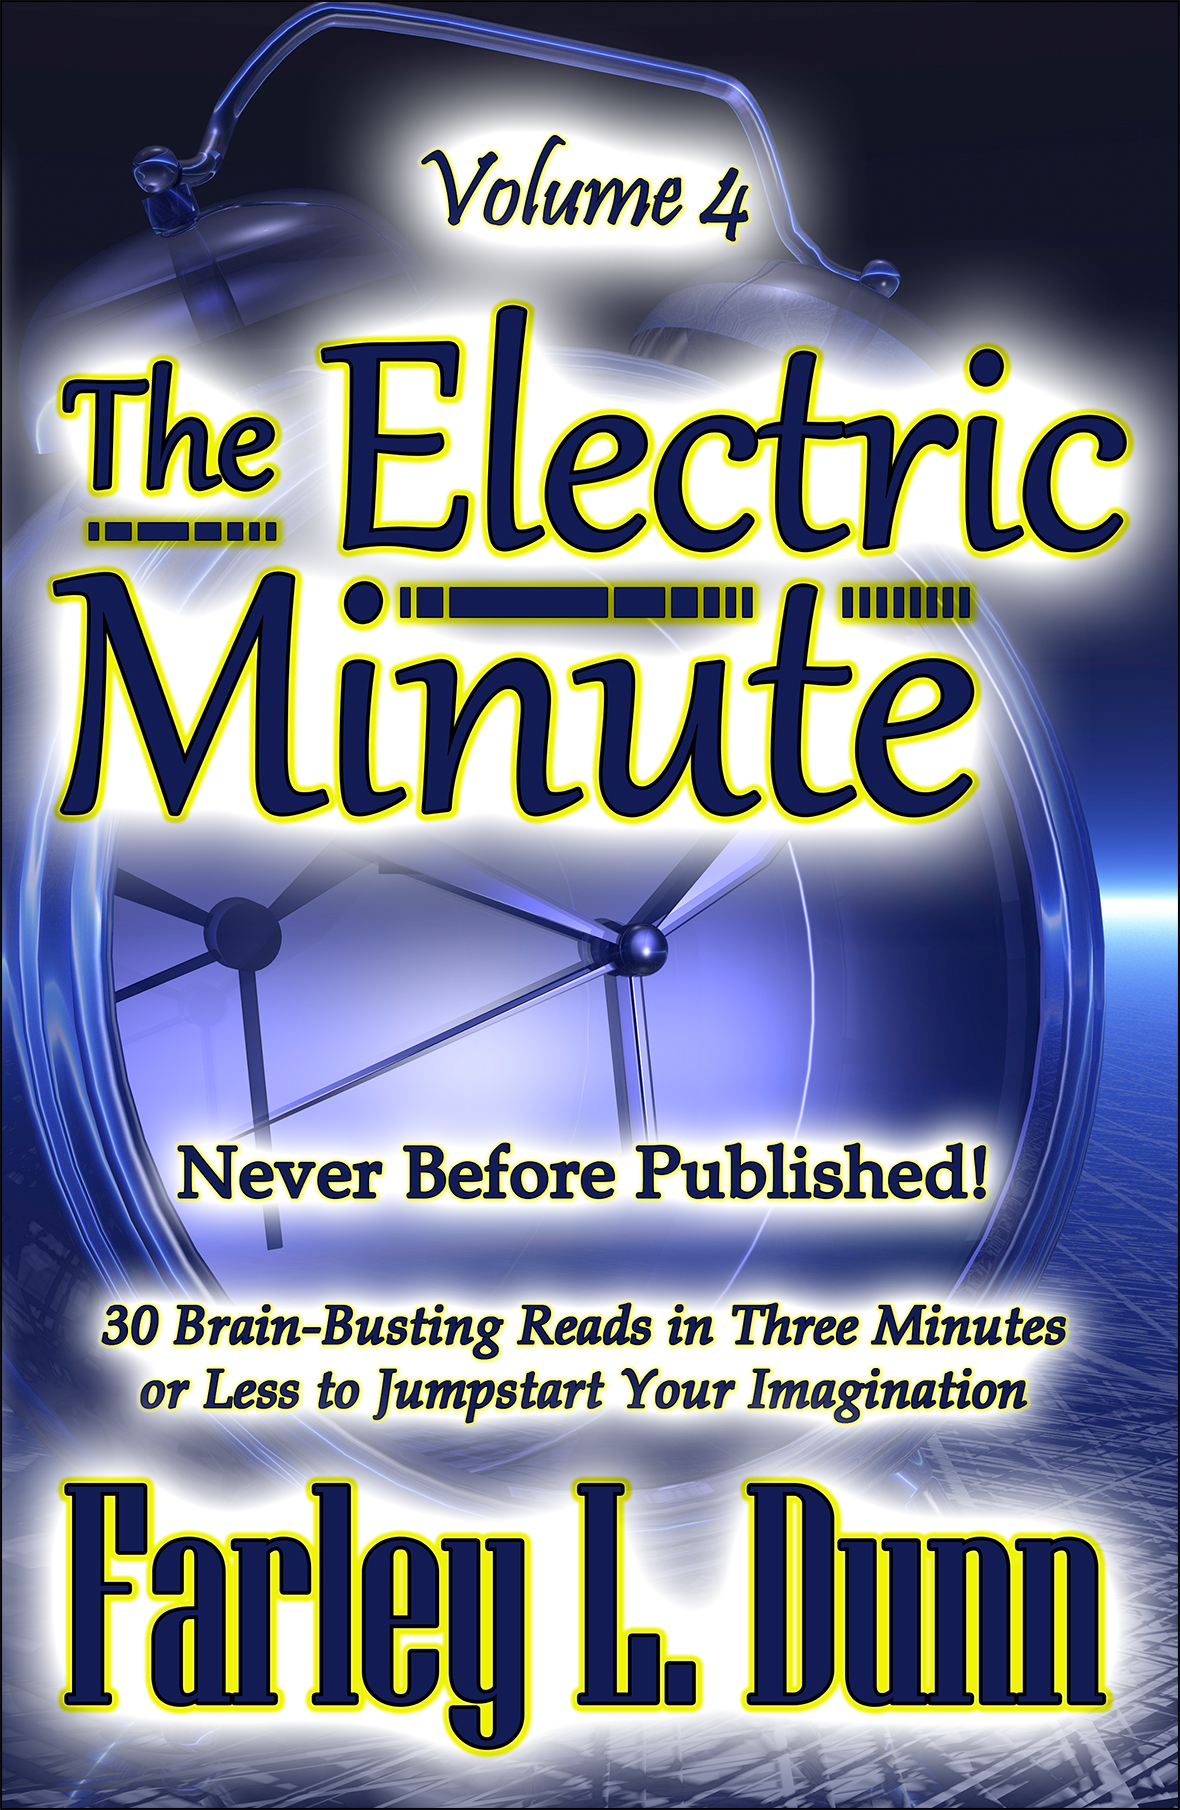 The Electric Minute Cover Vol 4 Full V1 Reduced for Webpages